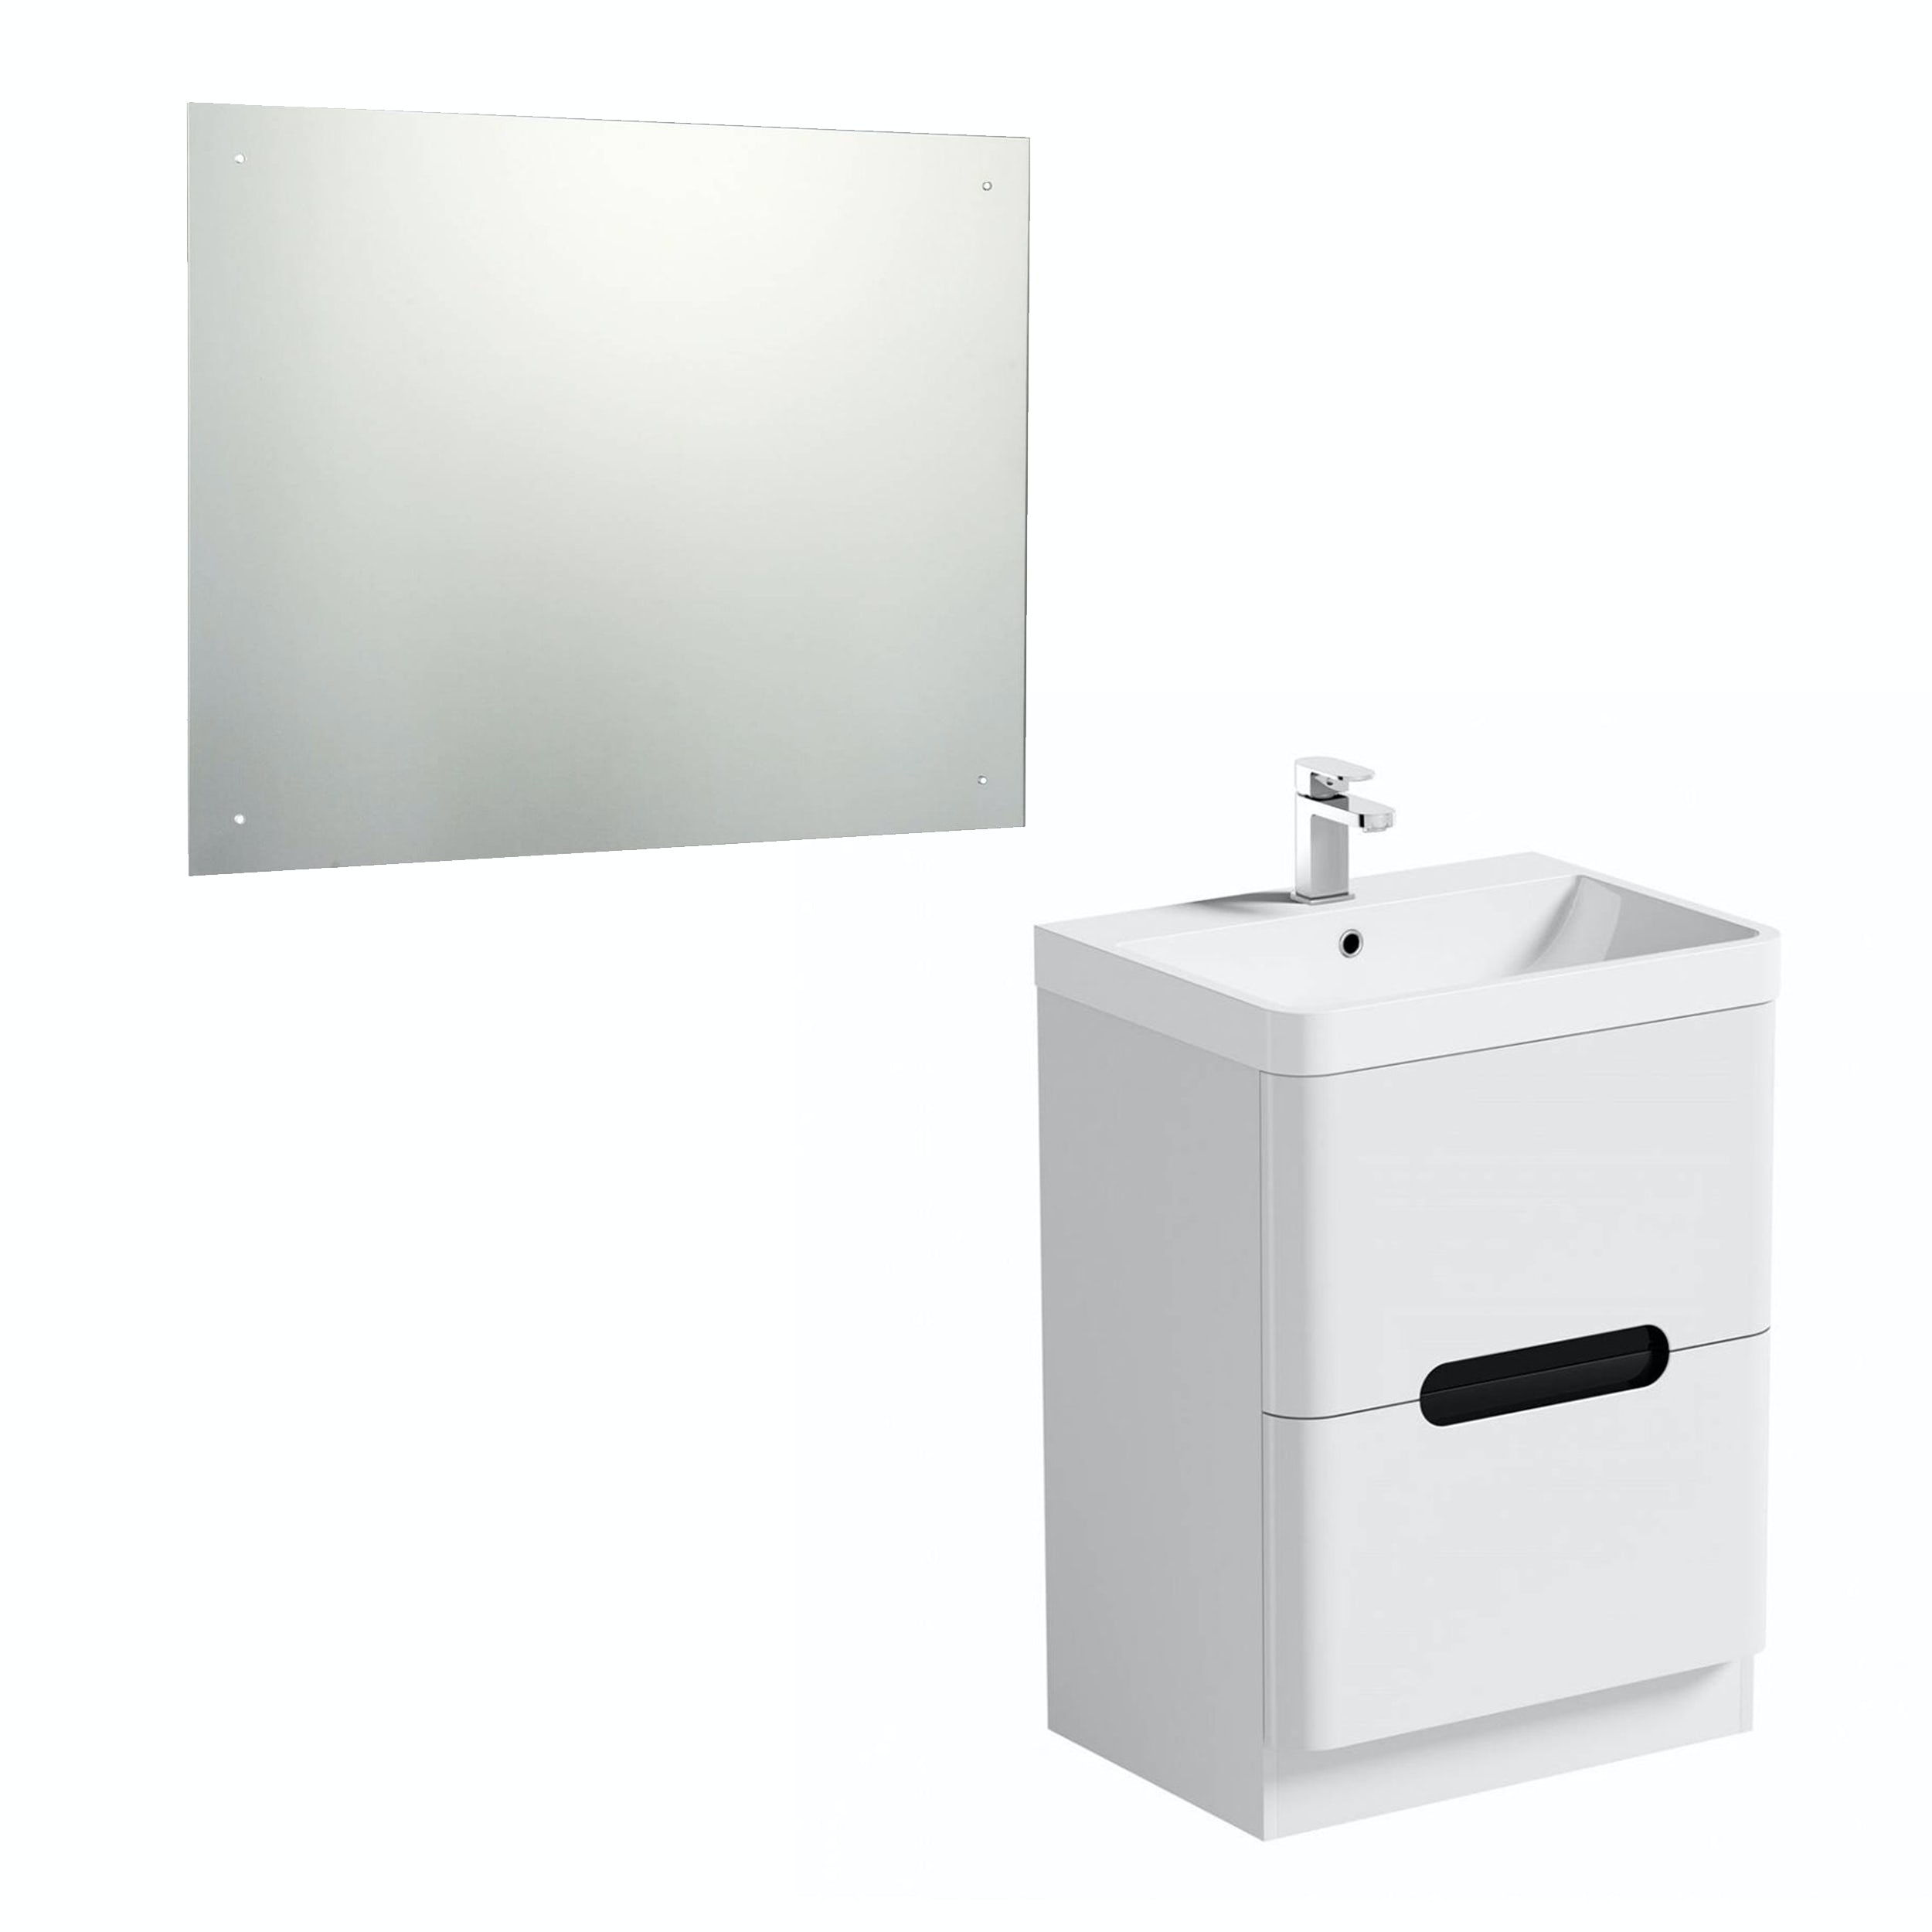 Mode Ellis essen vanity unit 600mm and mirror offer